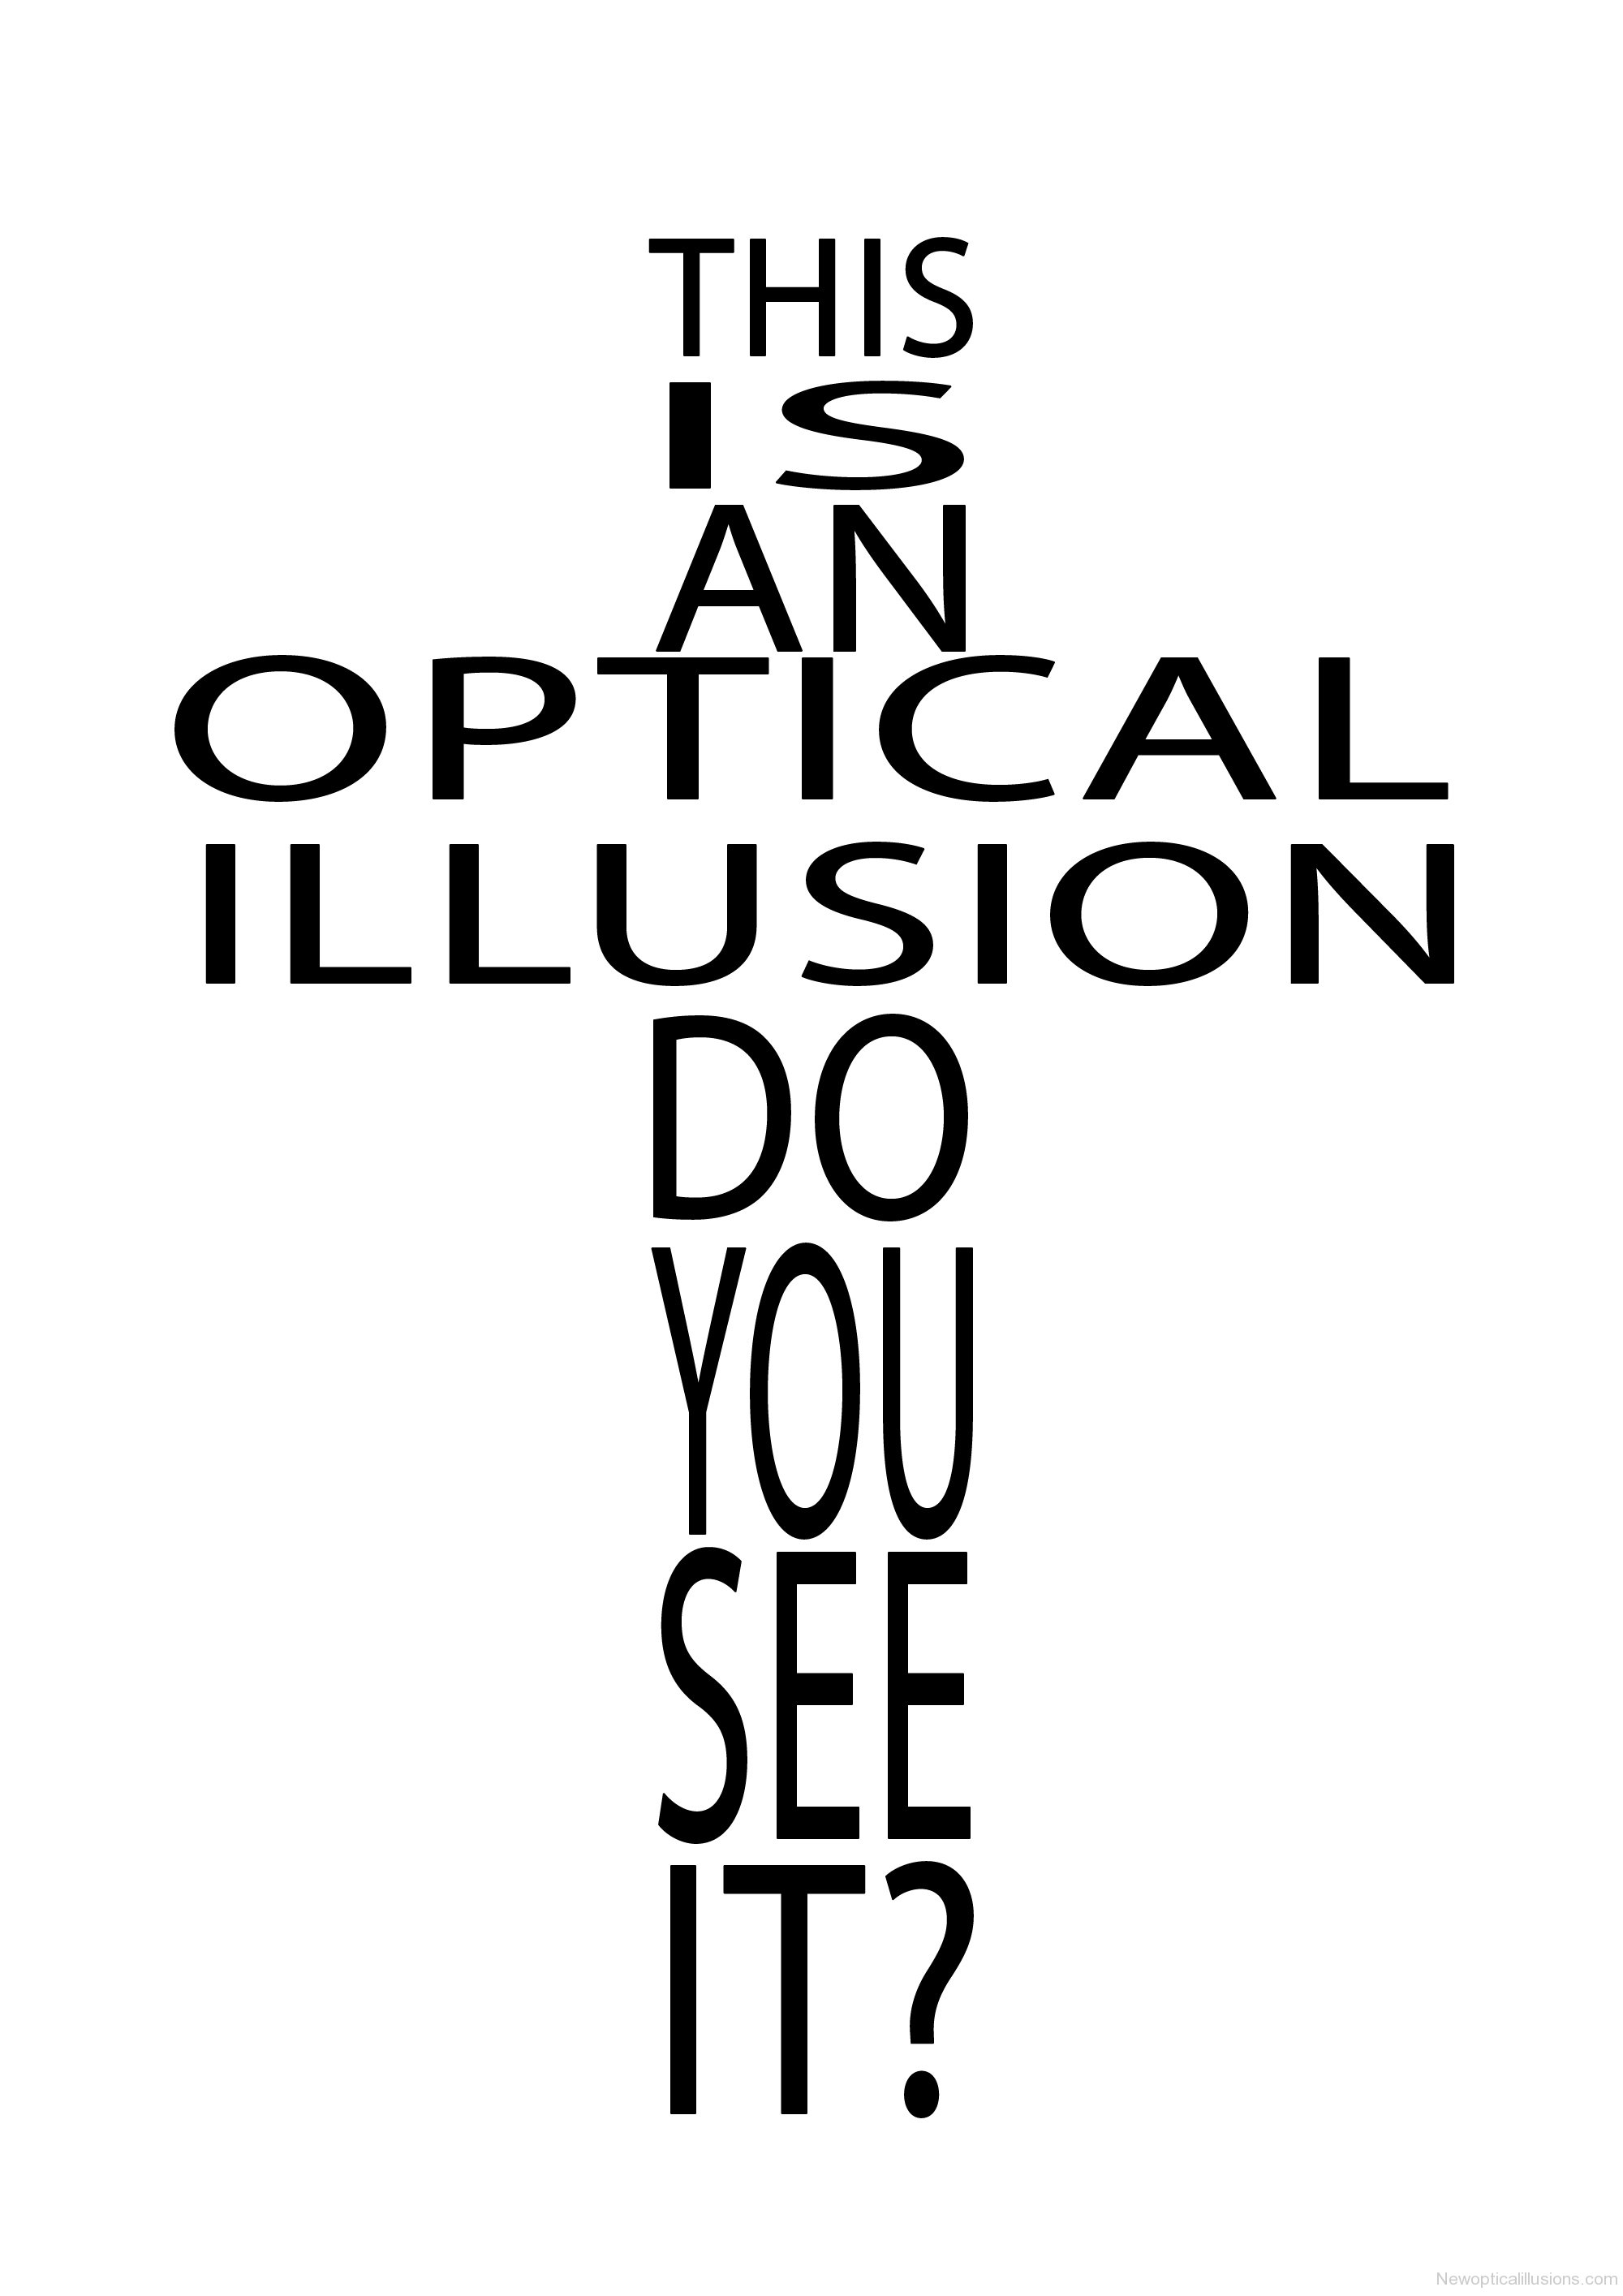 Mind Blowing Optical Illusions